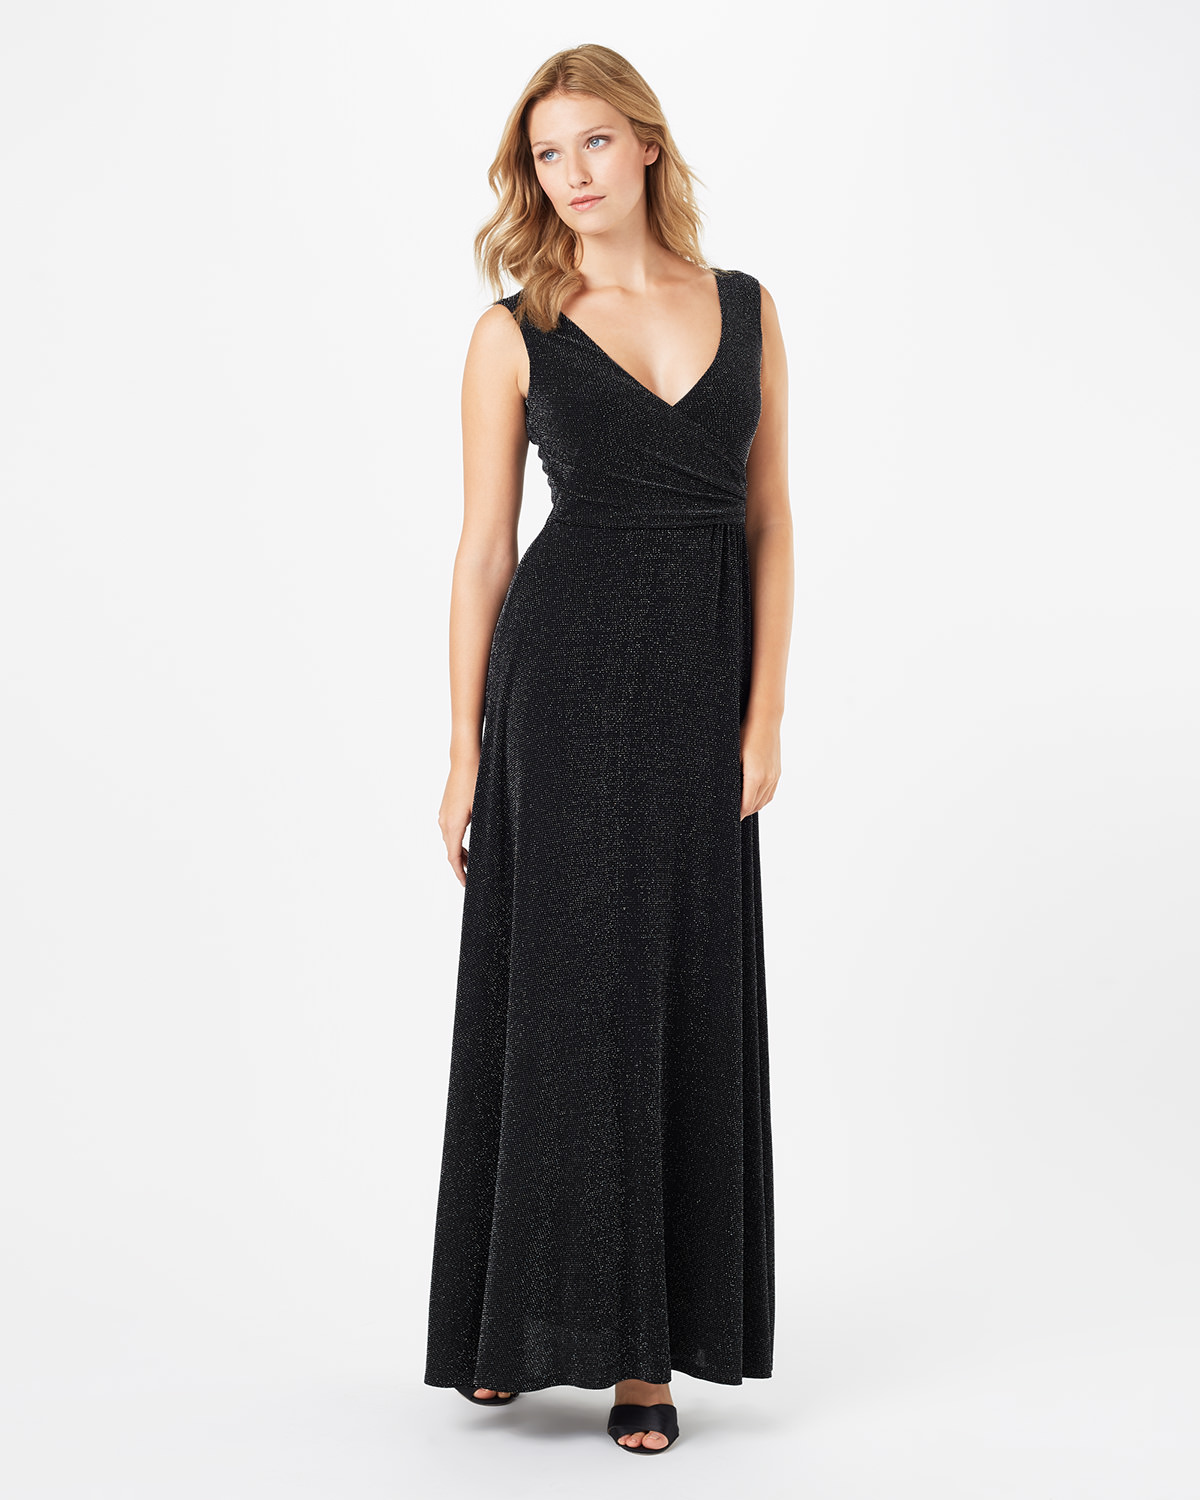 BEULAH SPARKLE FULL LENGTH DRESS.jpg